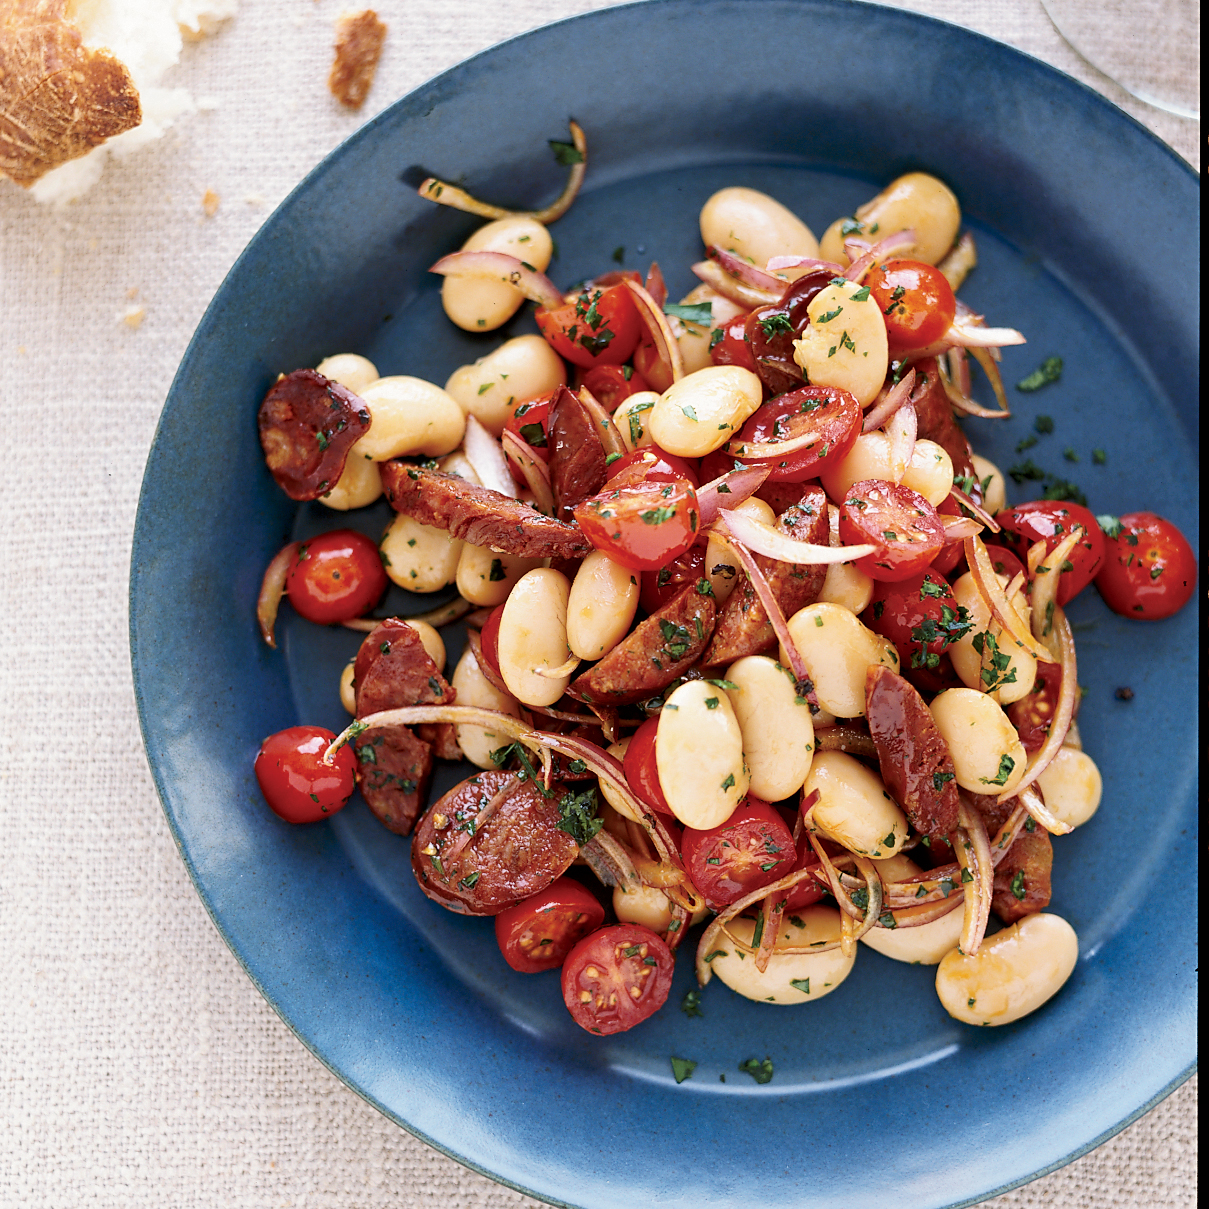 Butter Beans with Parsley, Tomatoes and Chorizo